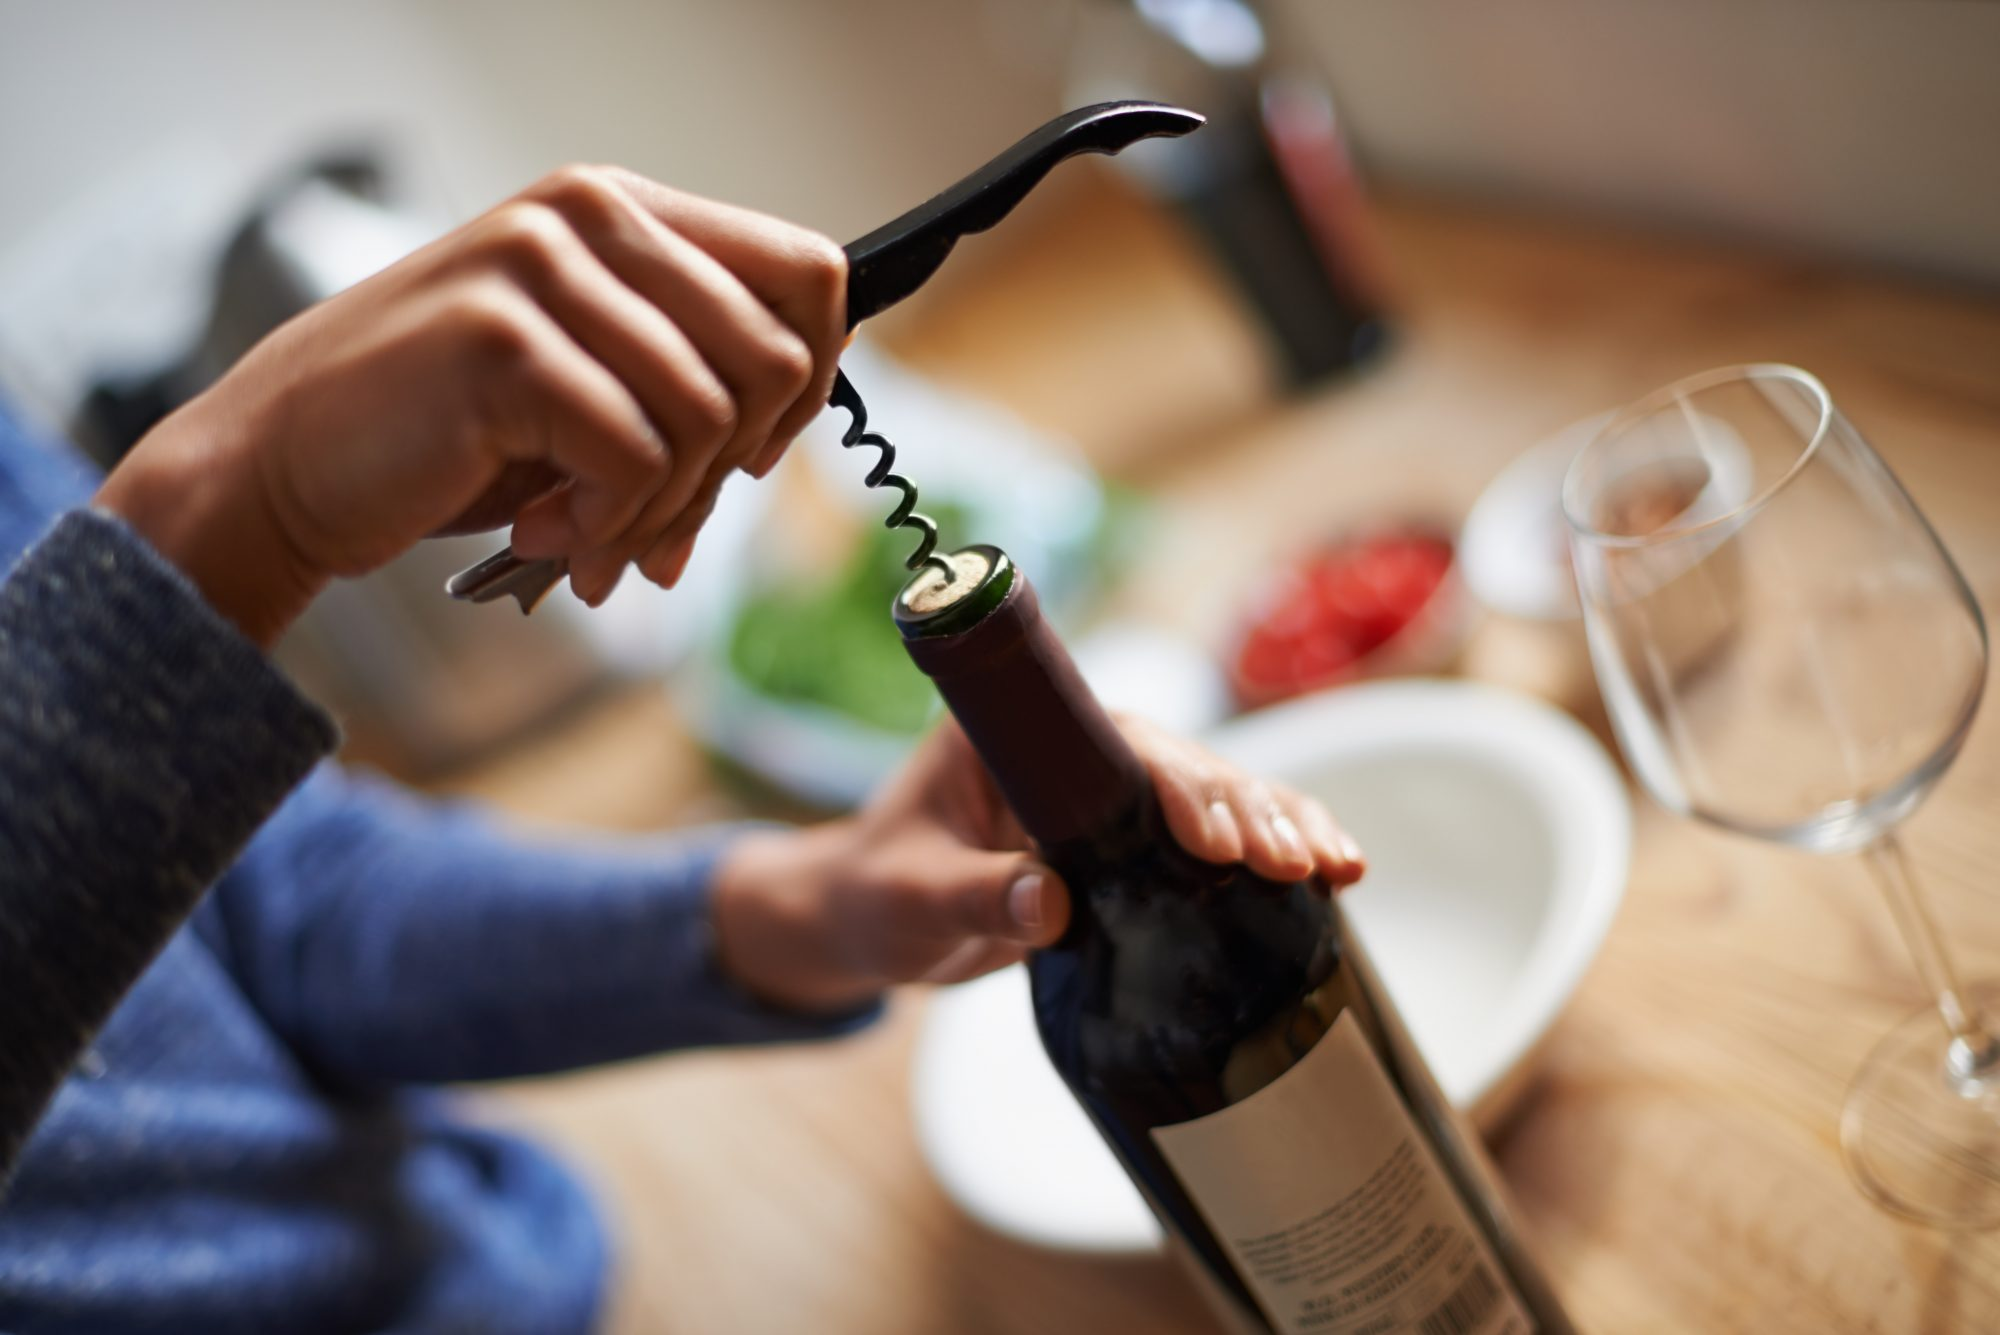 opening a wine bottle using a corkscrew